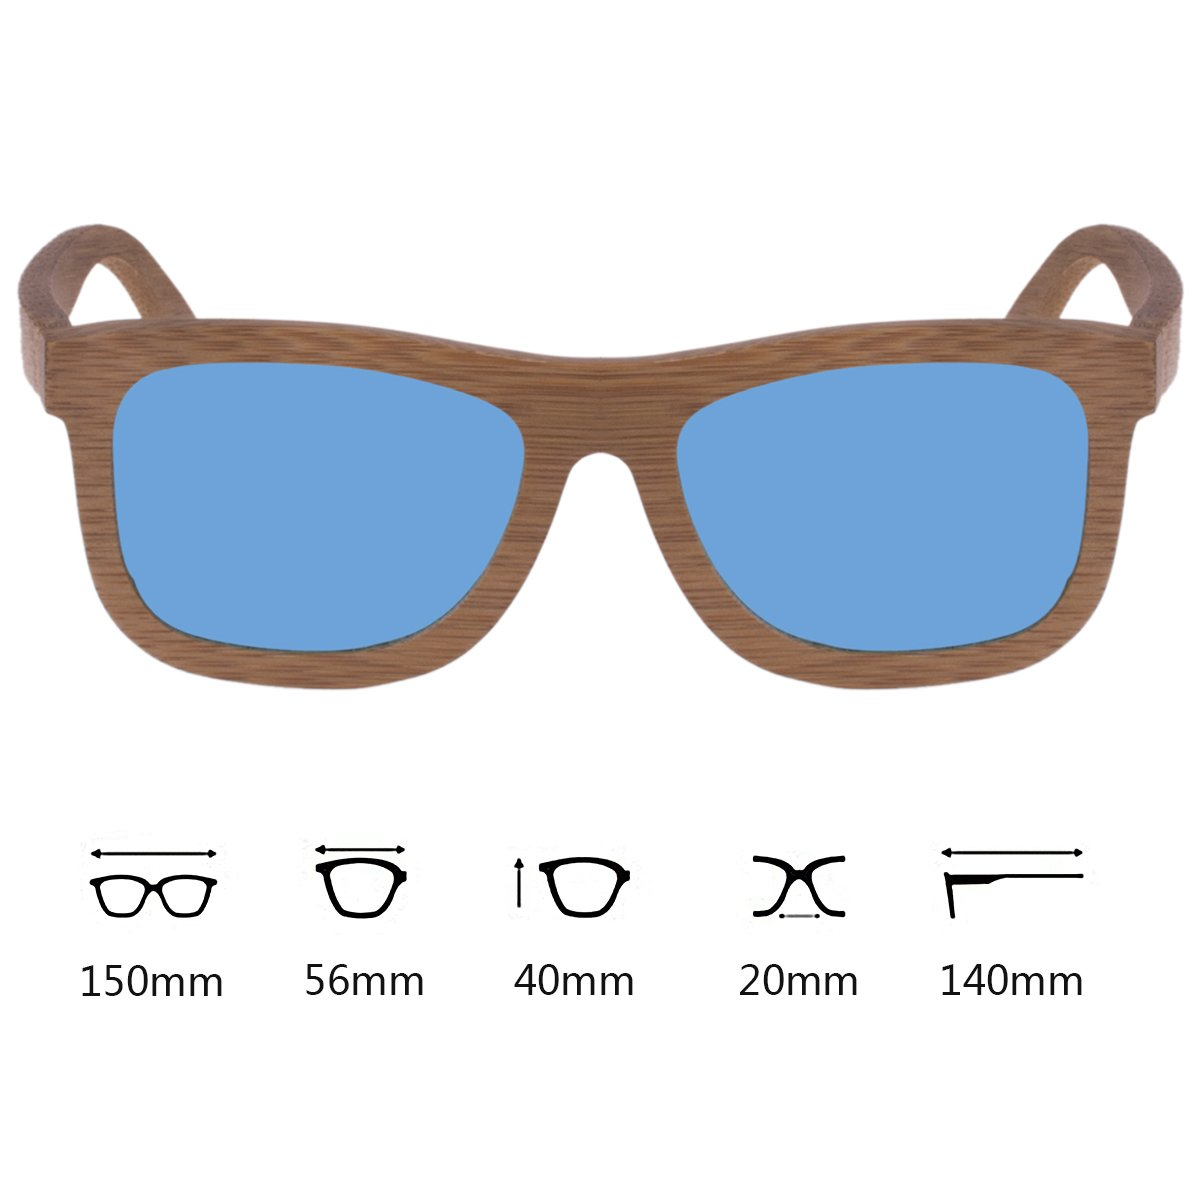 WISH CLUB Bamboo Wood Frame Lightweight Sunglasses Polarized UV 400 Retro Floating Square Mirrored Lenses Fashion Glasses (Blue)